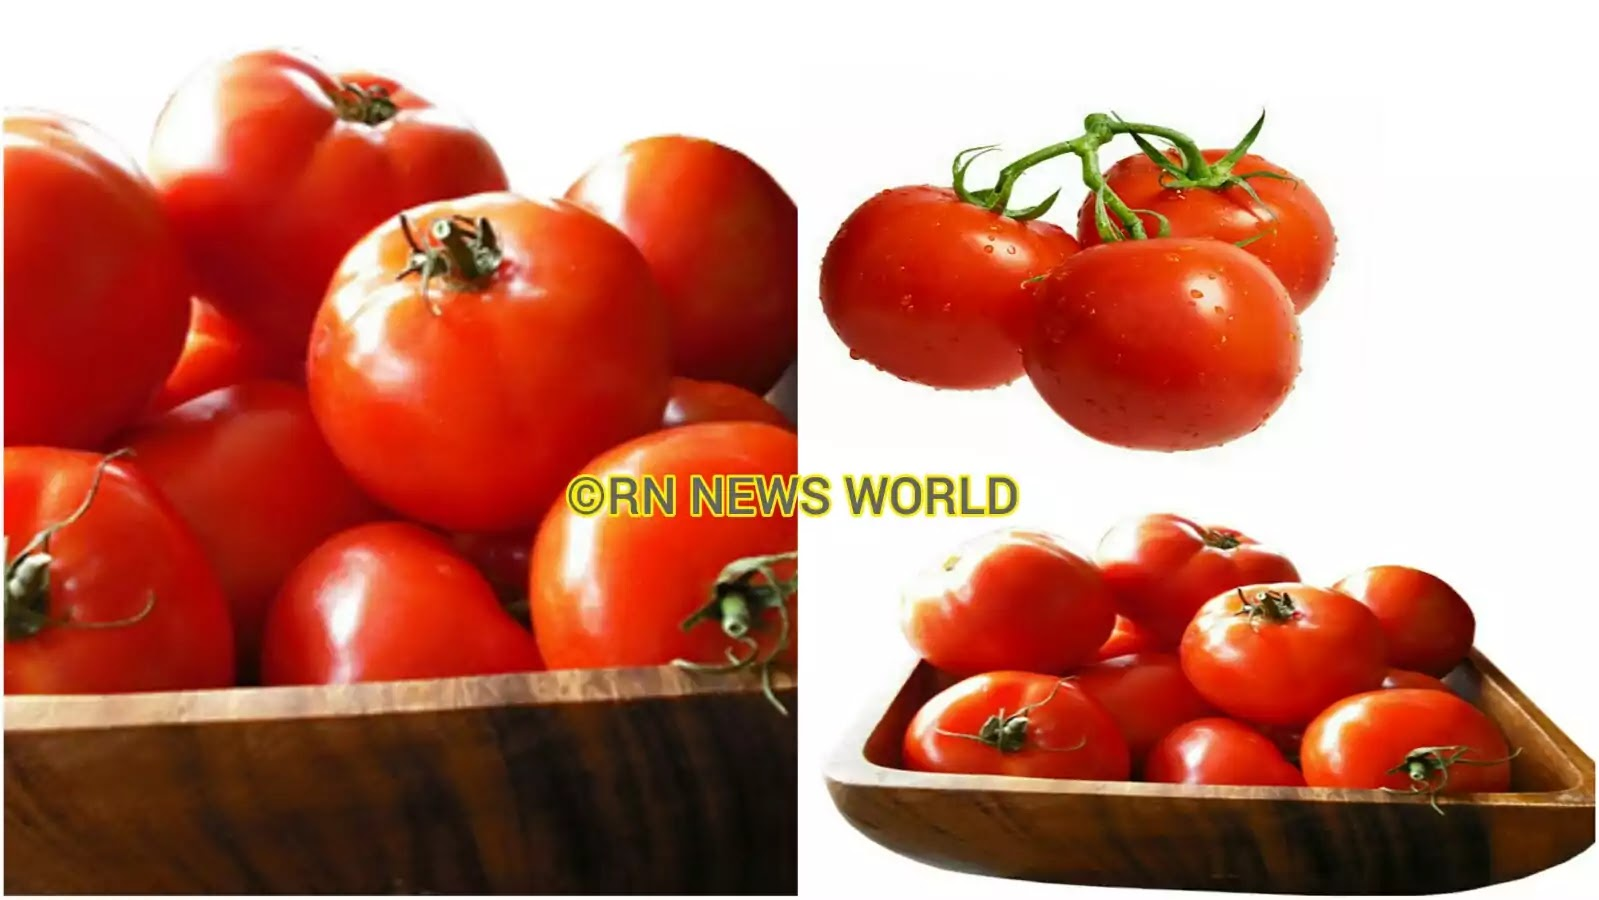 How to use tomato on face for glowing skin